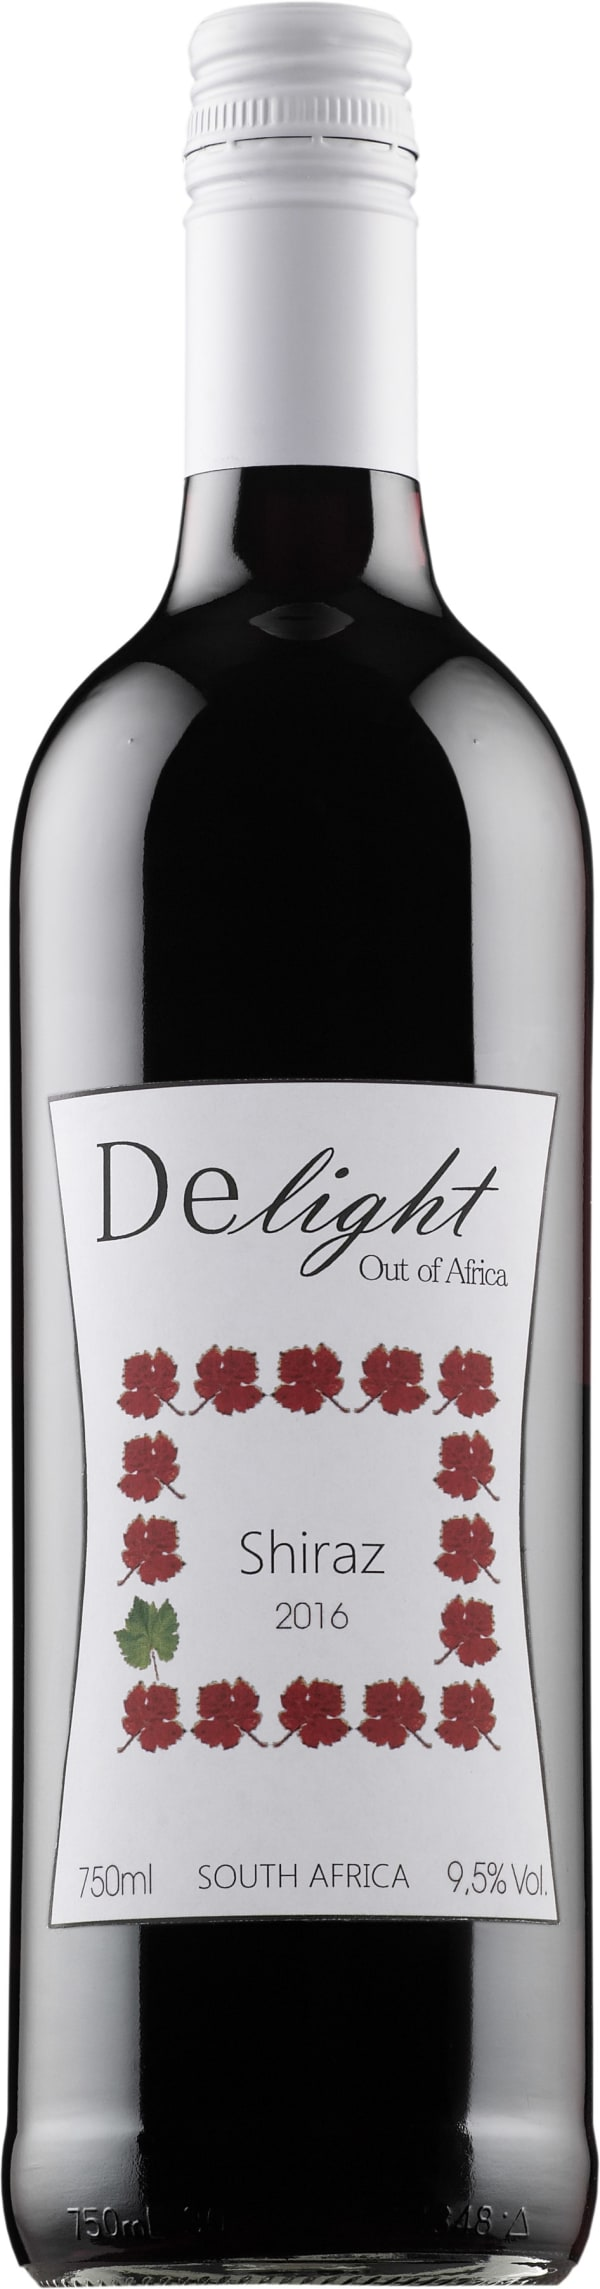 Delight Shiraz 2016